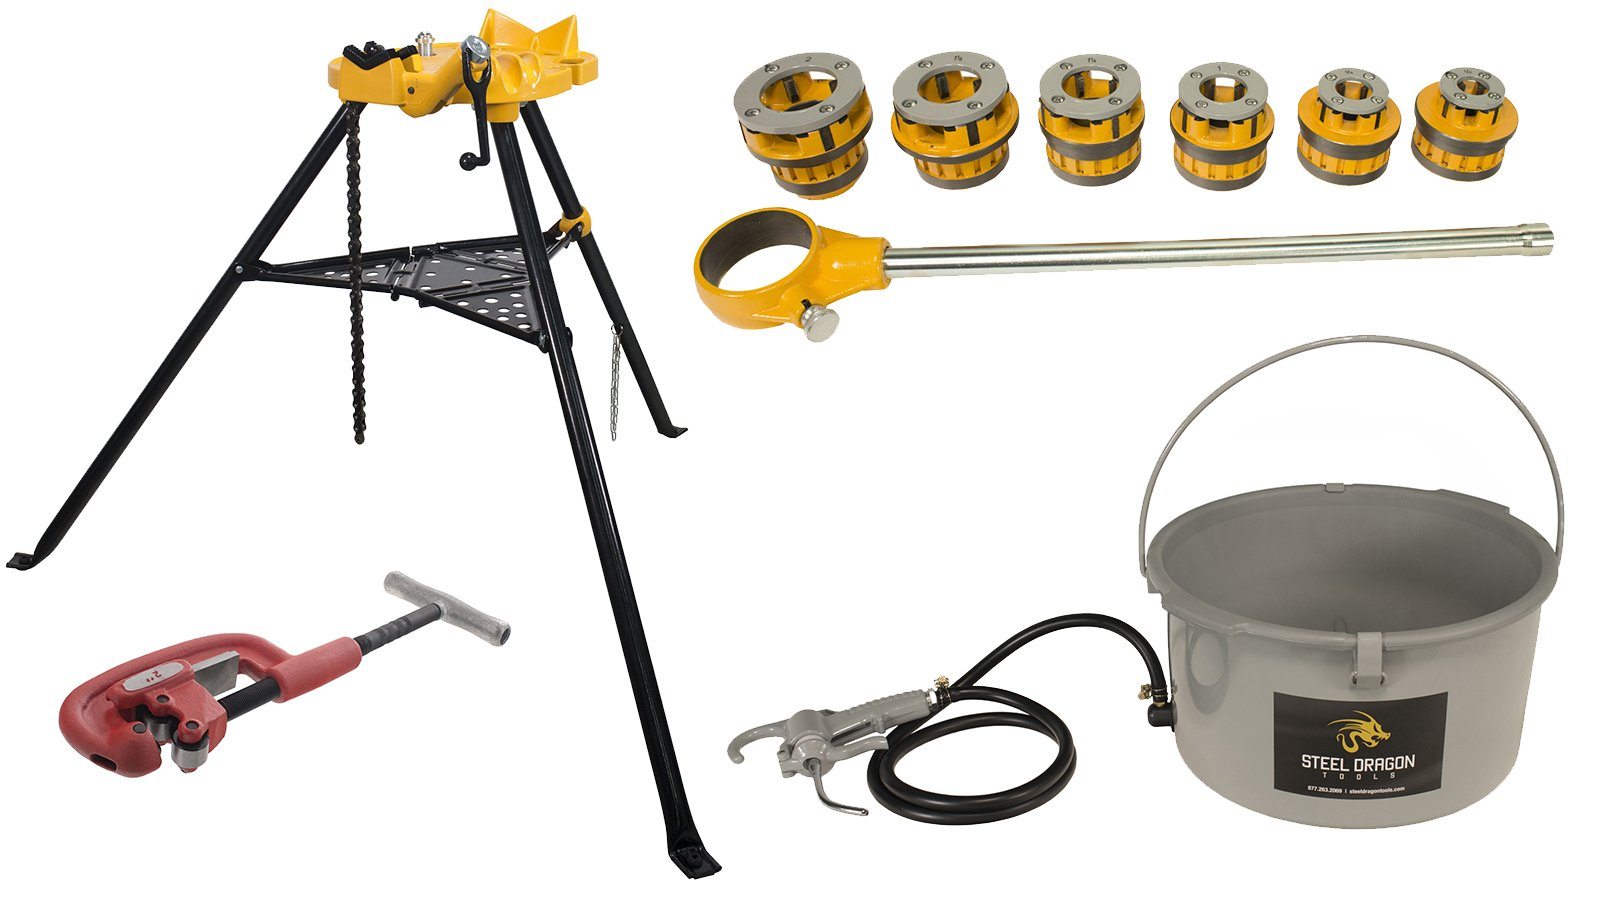 Steel Dragon Tools 12-R Manual Ratchet Pipe Threader Kit,418 Oiler, 460 Chain Vise, 2A Cutter